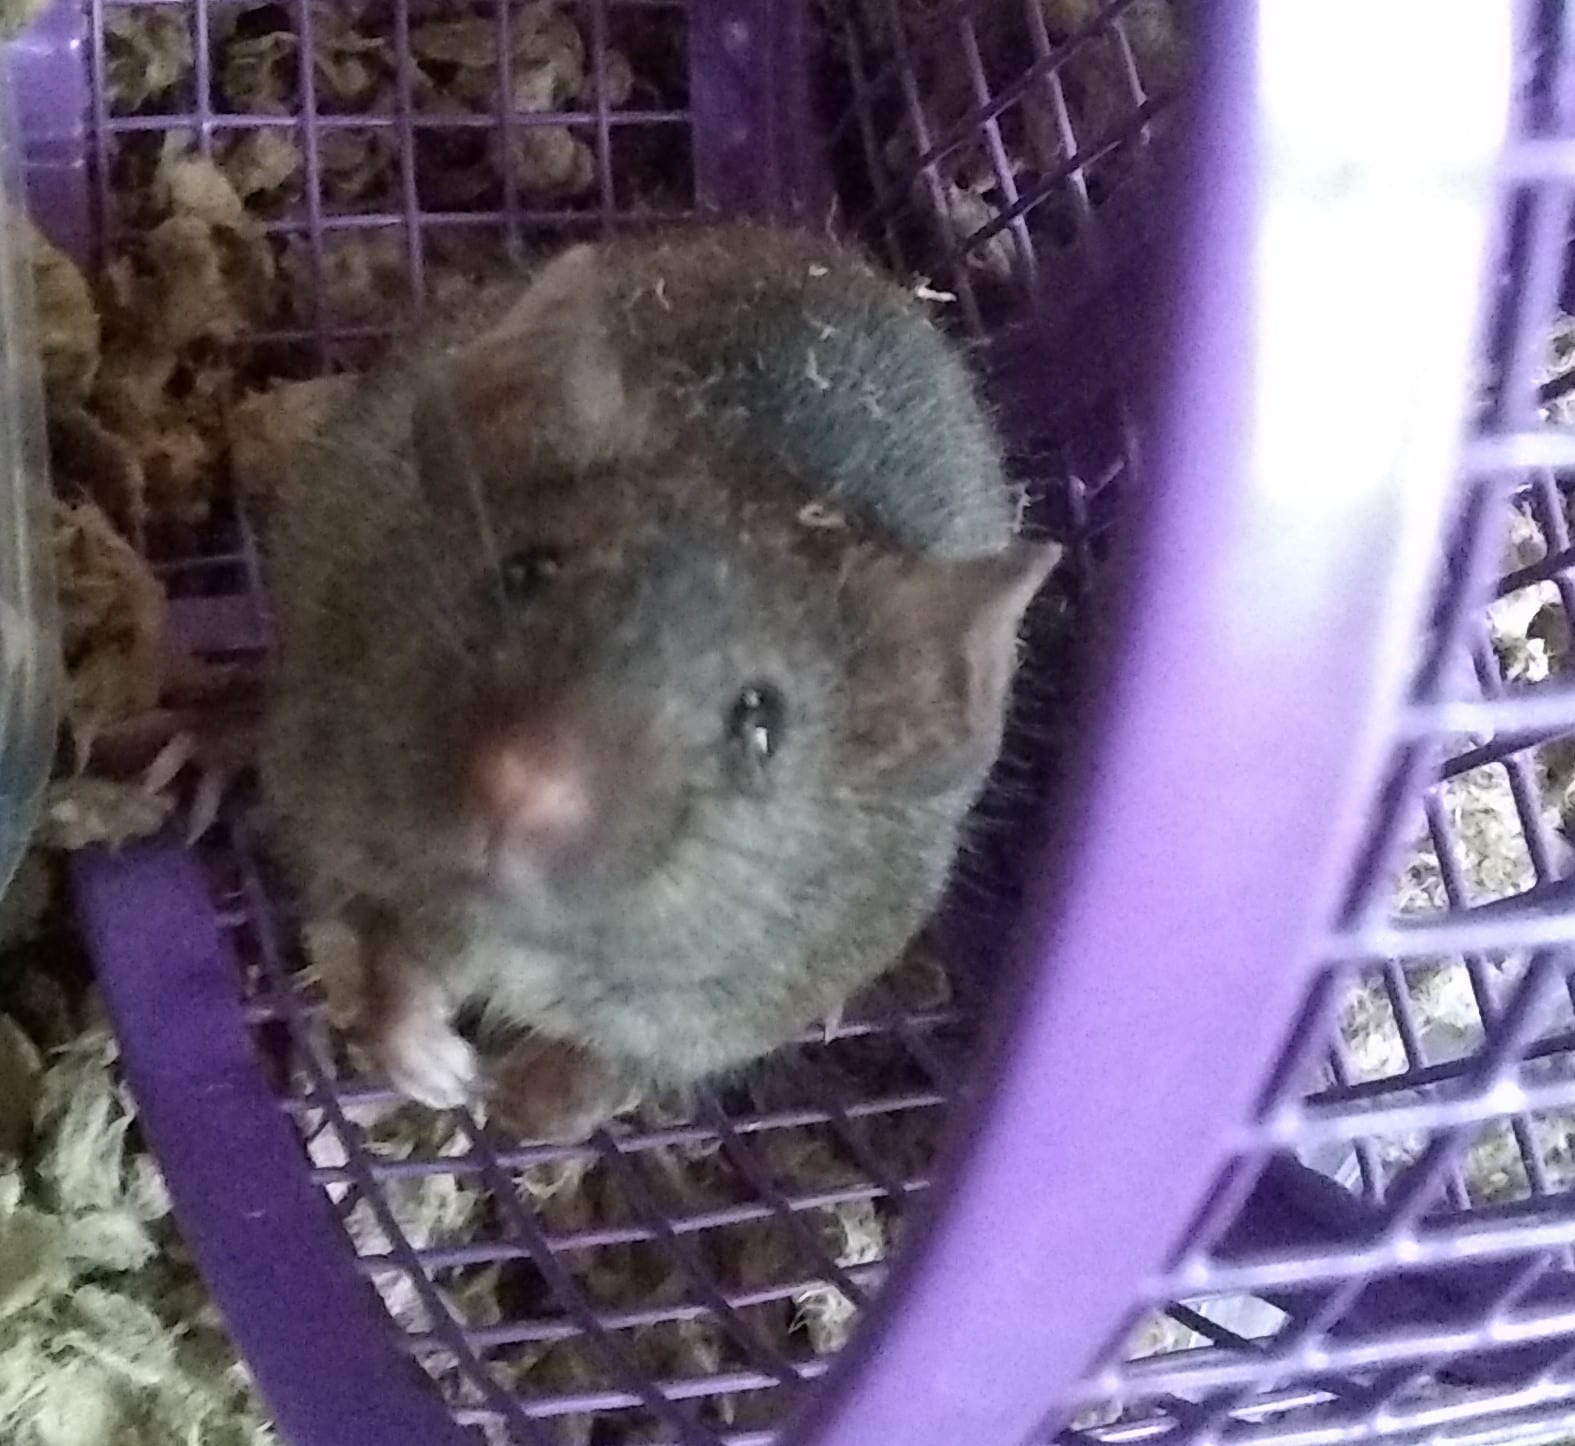 Brown colored house mouse on exercise wheel